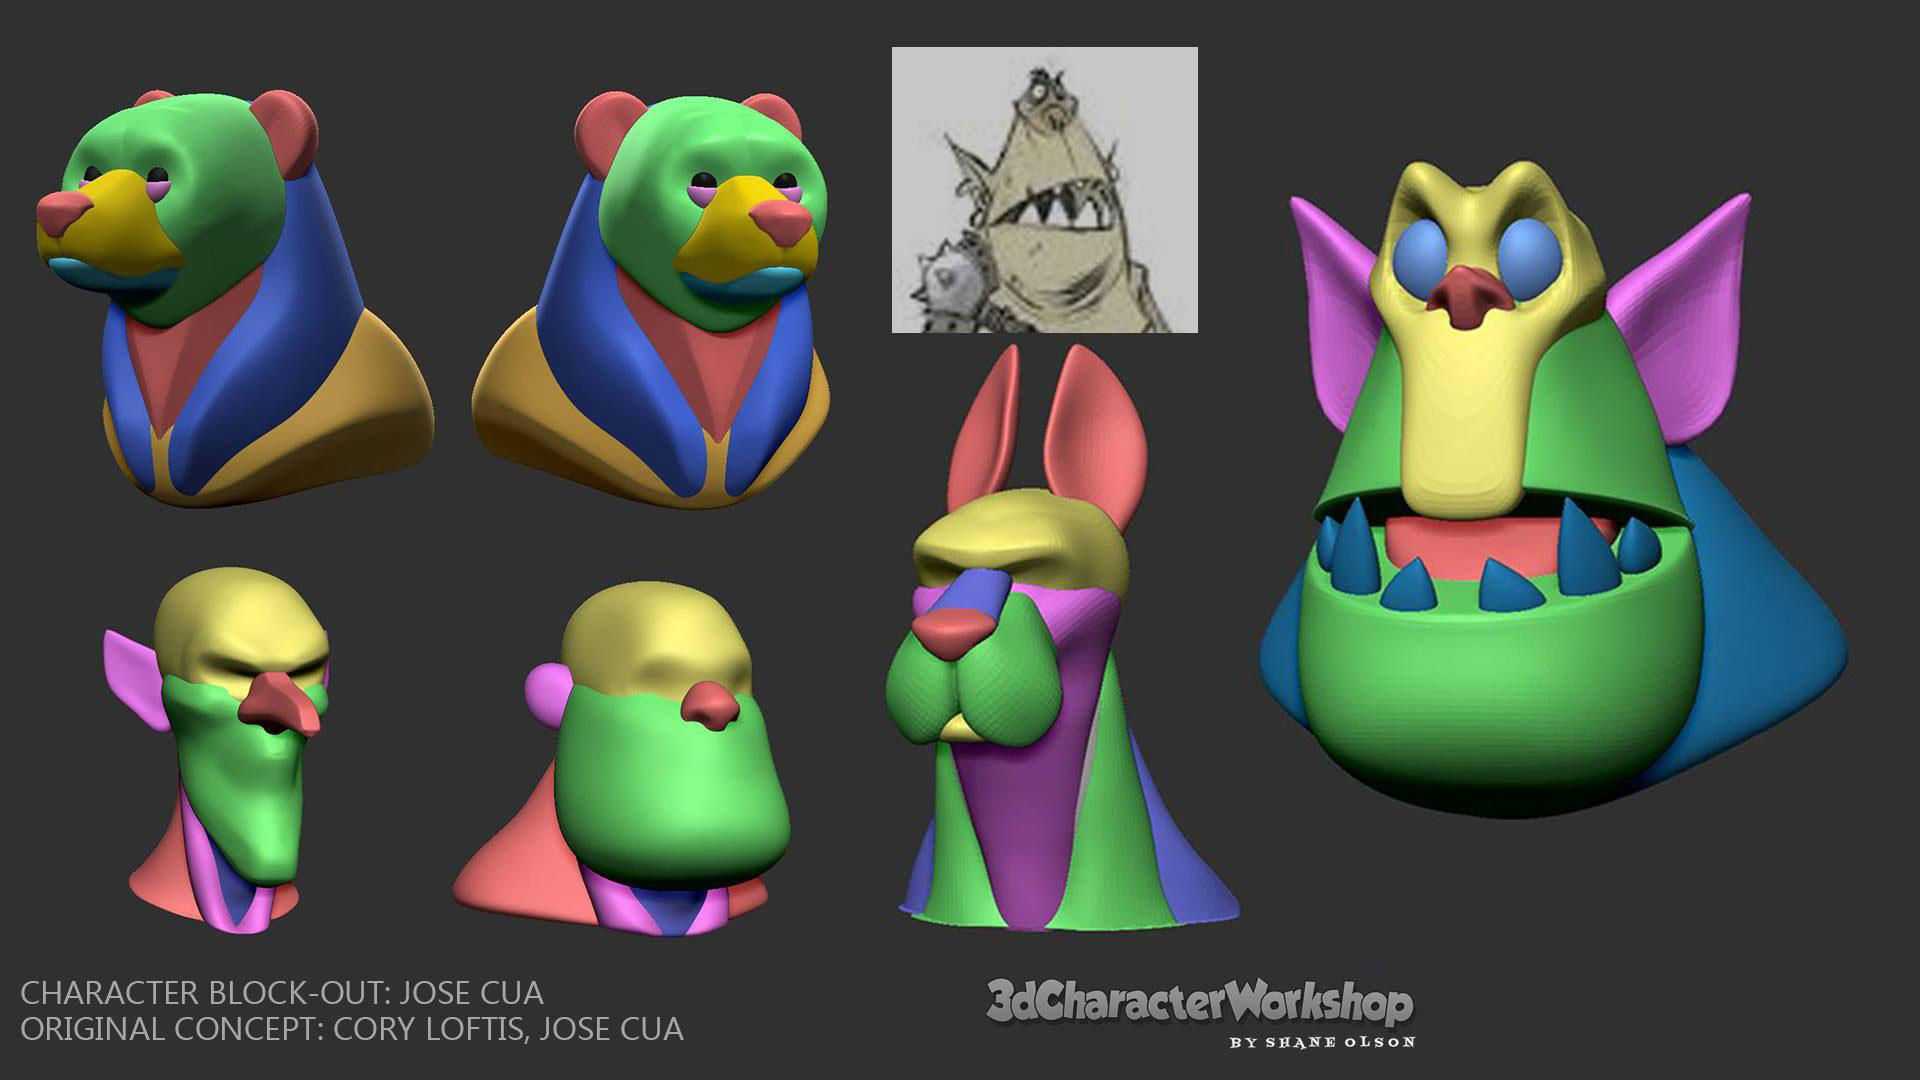 Block-Out Student Gallery | Character Block-Out in 2019